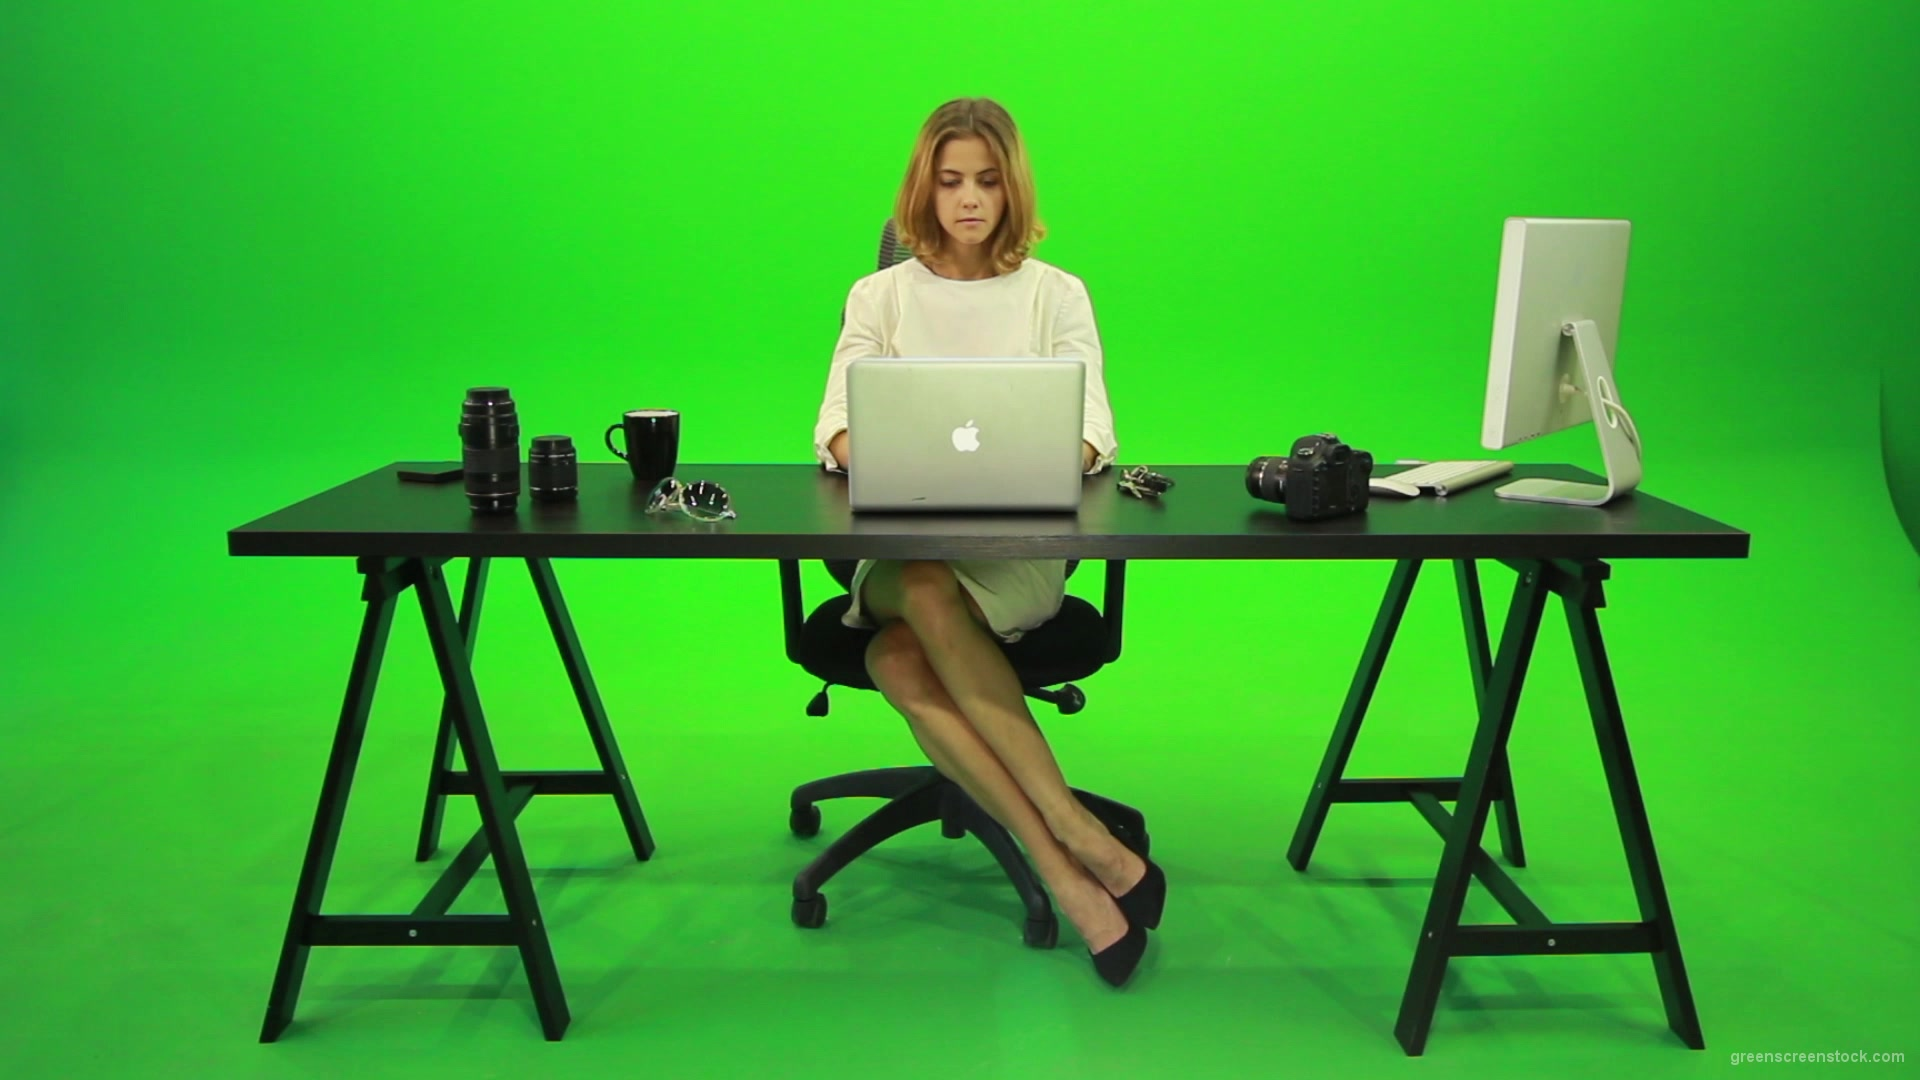 Business Woman Working In The Office Green Screen Footage